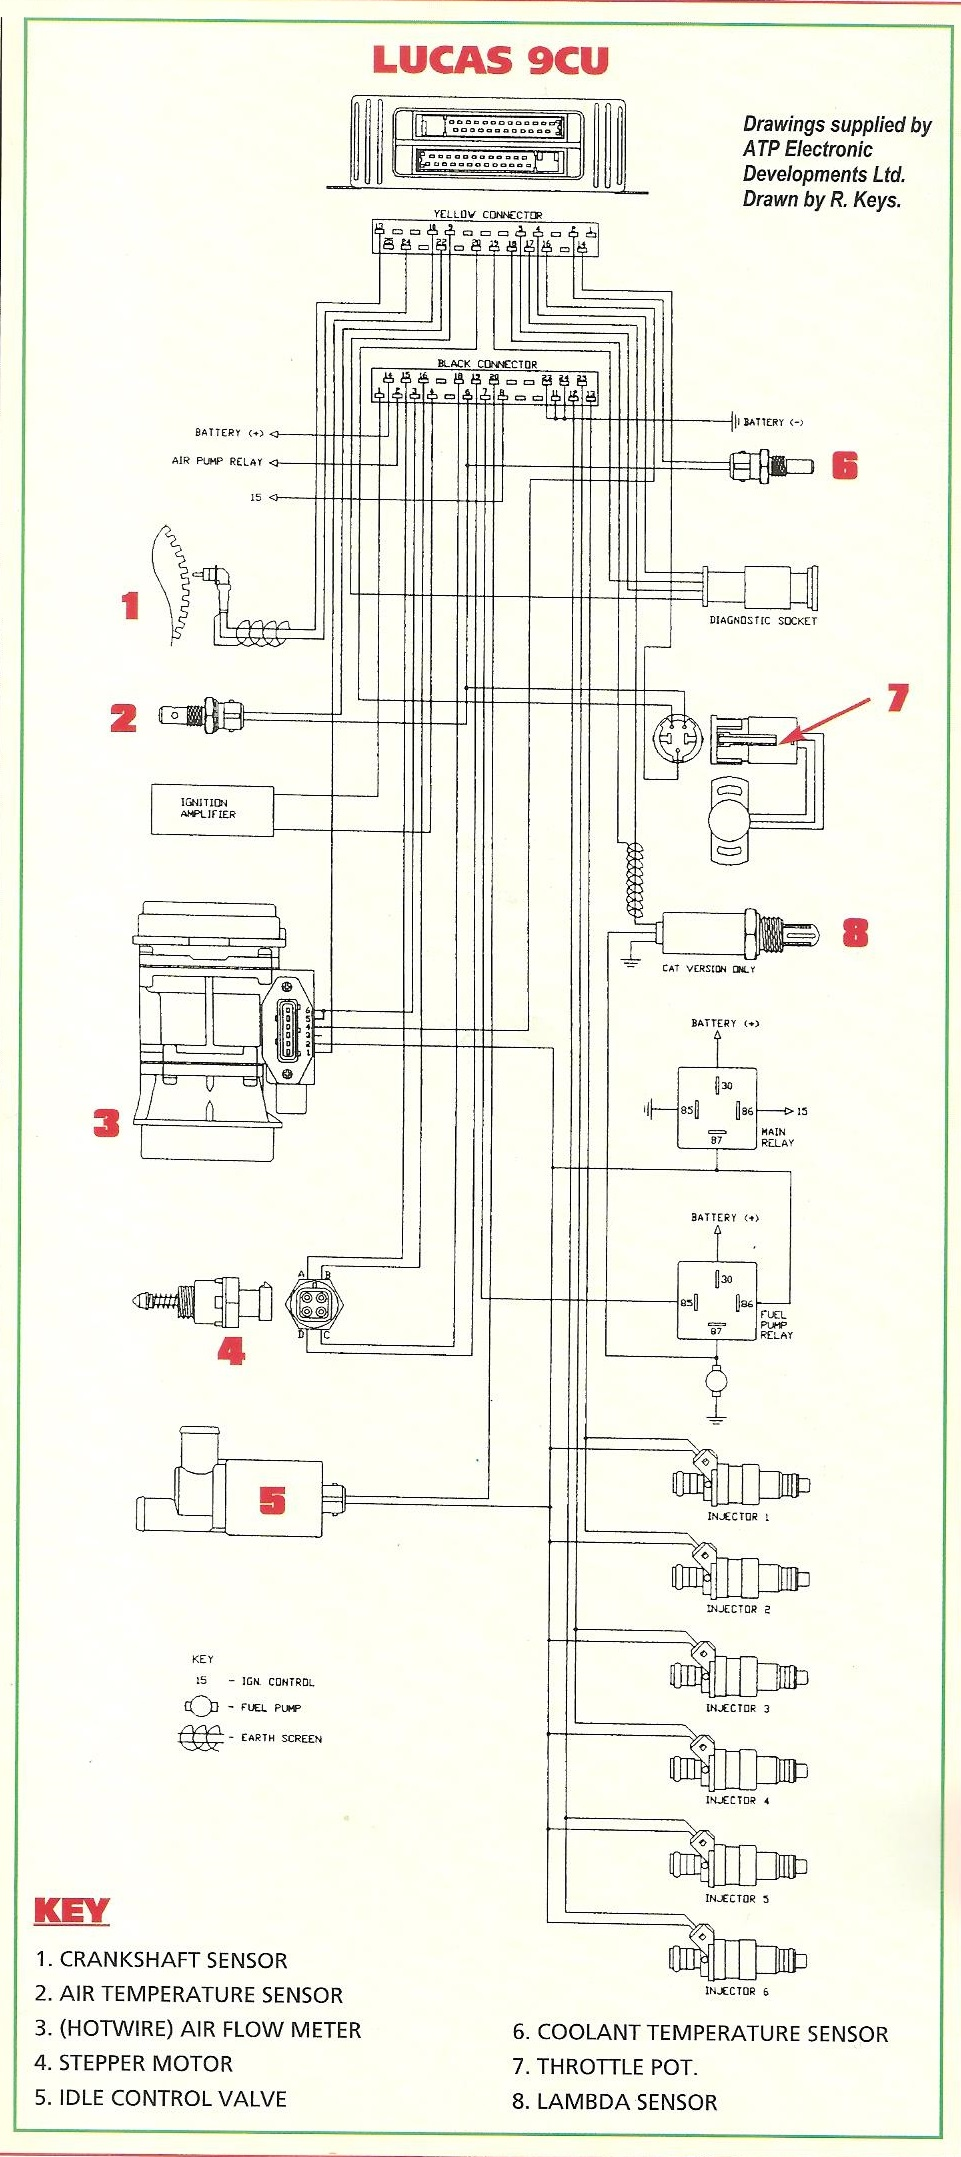 Ecu Wiring Schematic Xj40 Stepper Motor Control Circuit Diagram Image